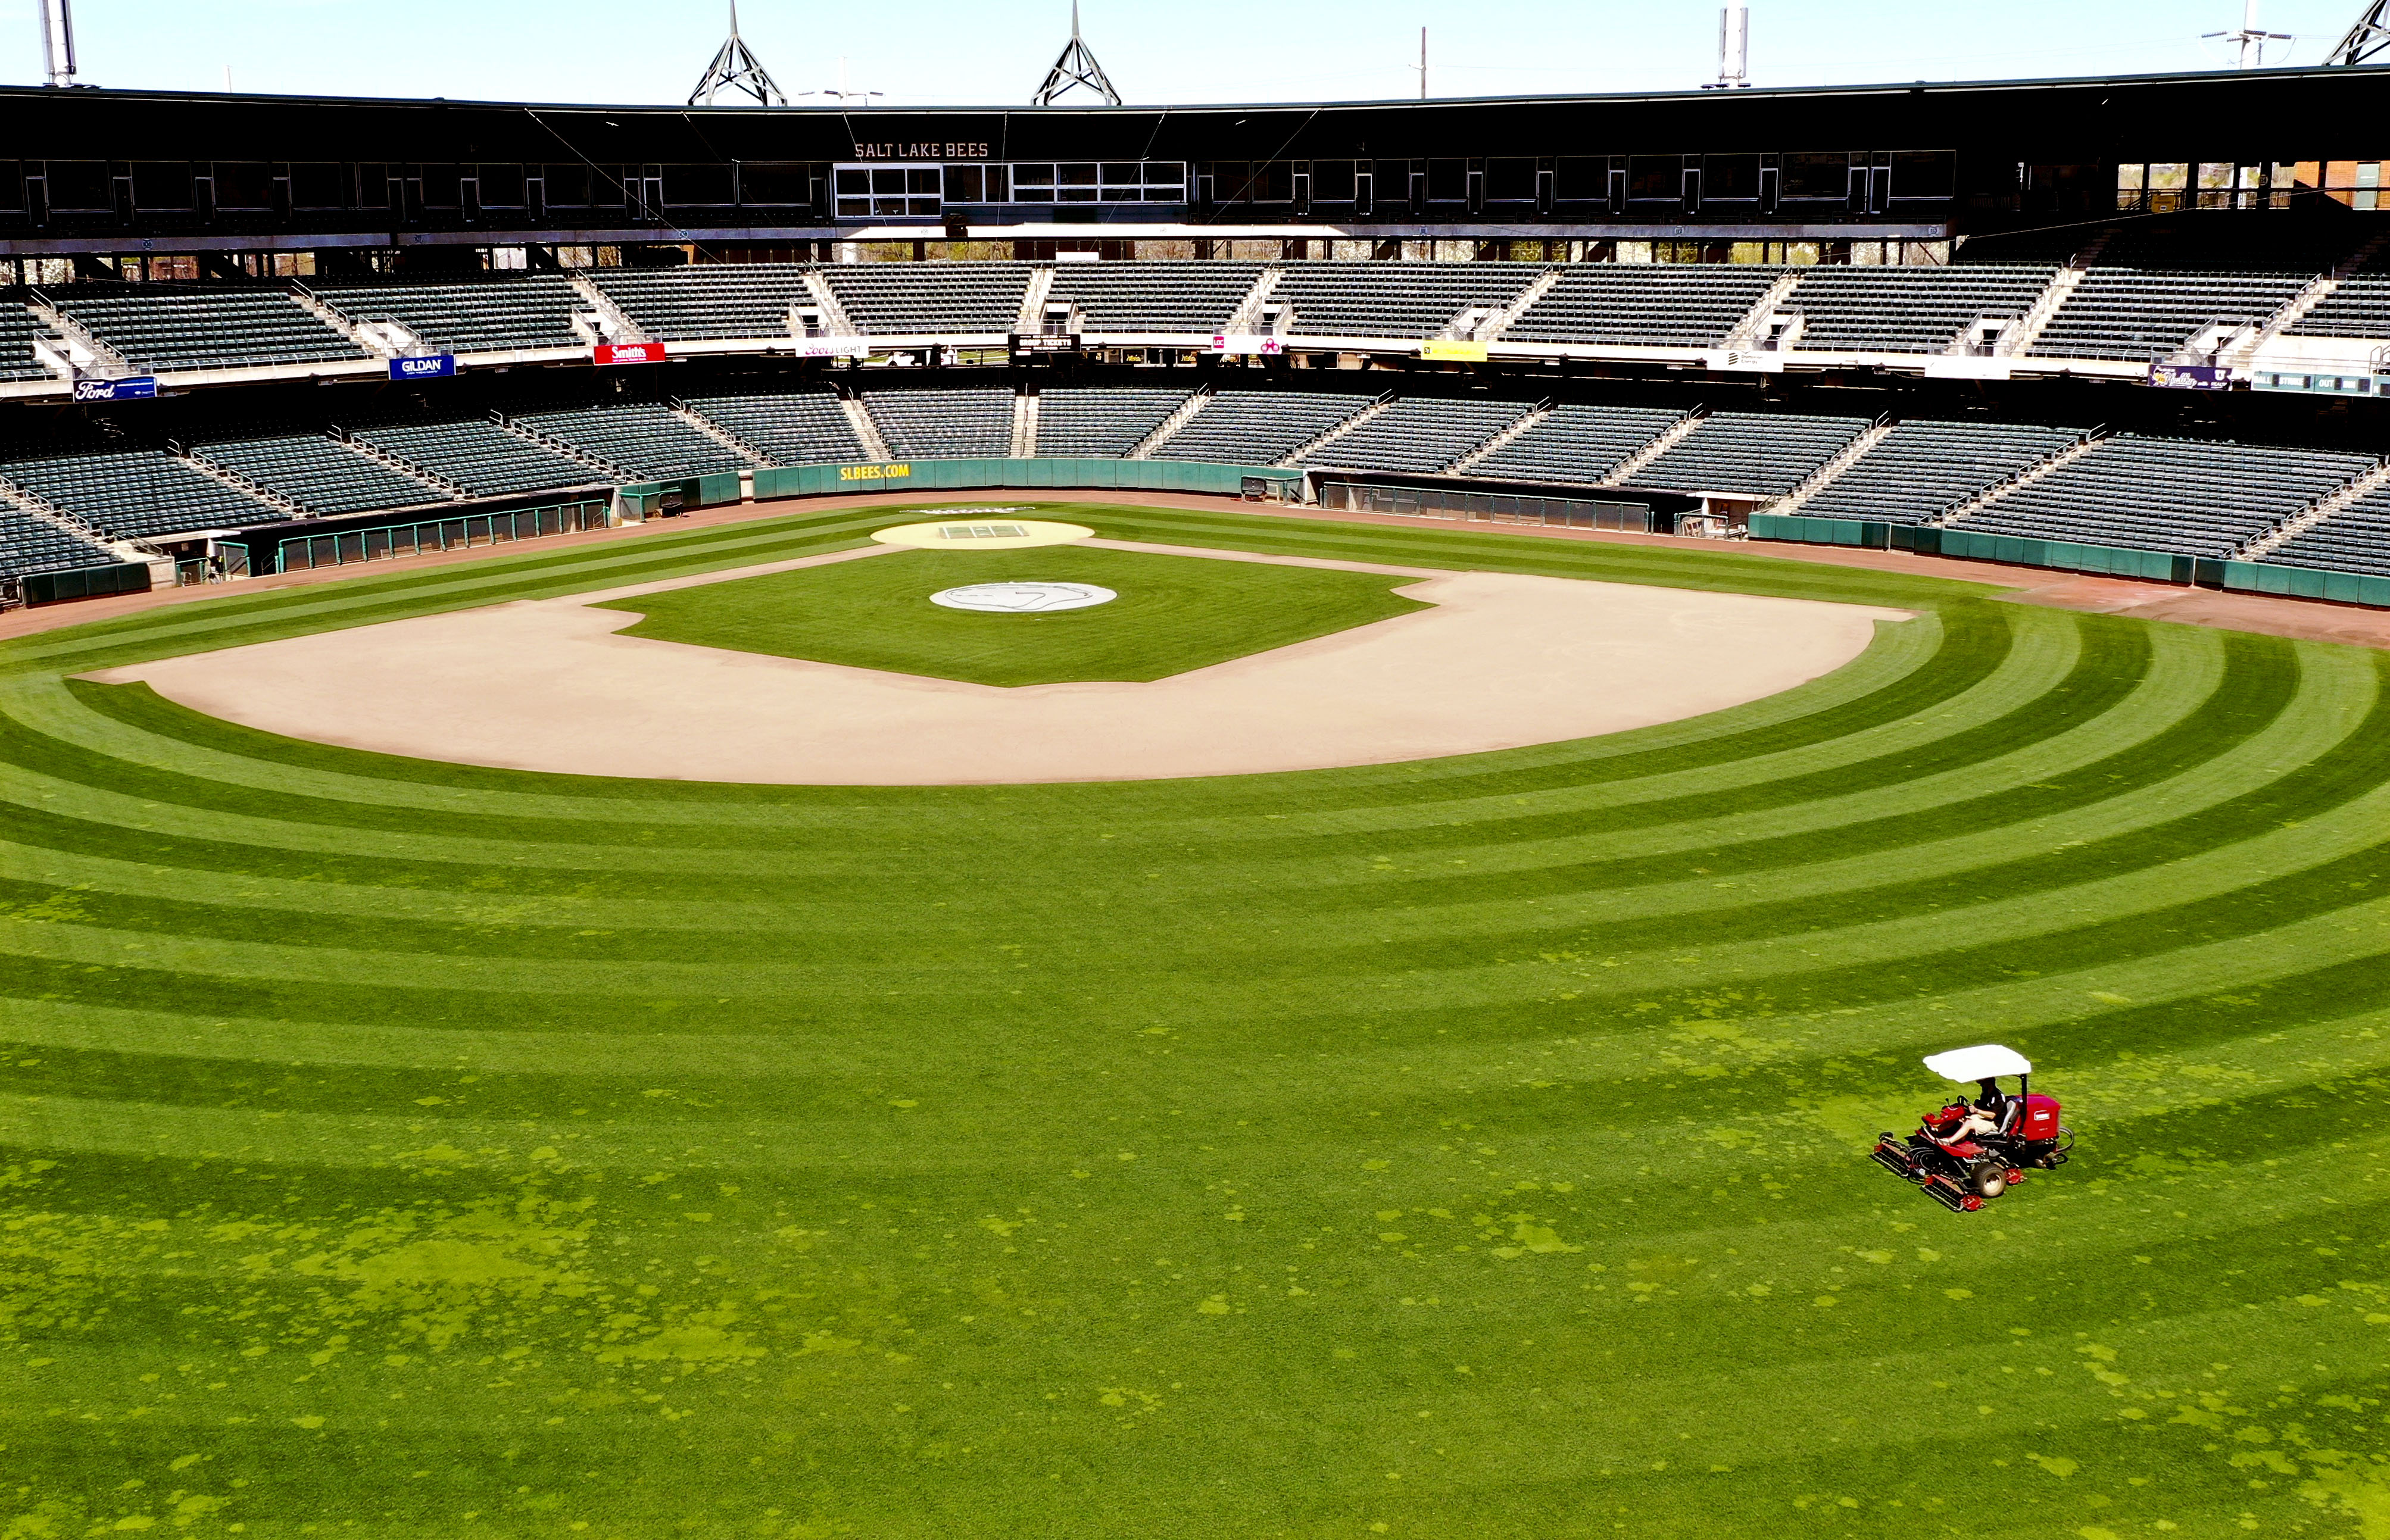 Brian Soukup, director of field operations for the Salt Lake Bees, mows the field at Smith's Ballpark in Salt Lake City on Wednesday, April 8, 2020. Soukup is intentionally keeping the discolored grass in an effort to save money until the season begins.